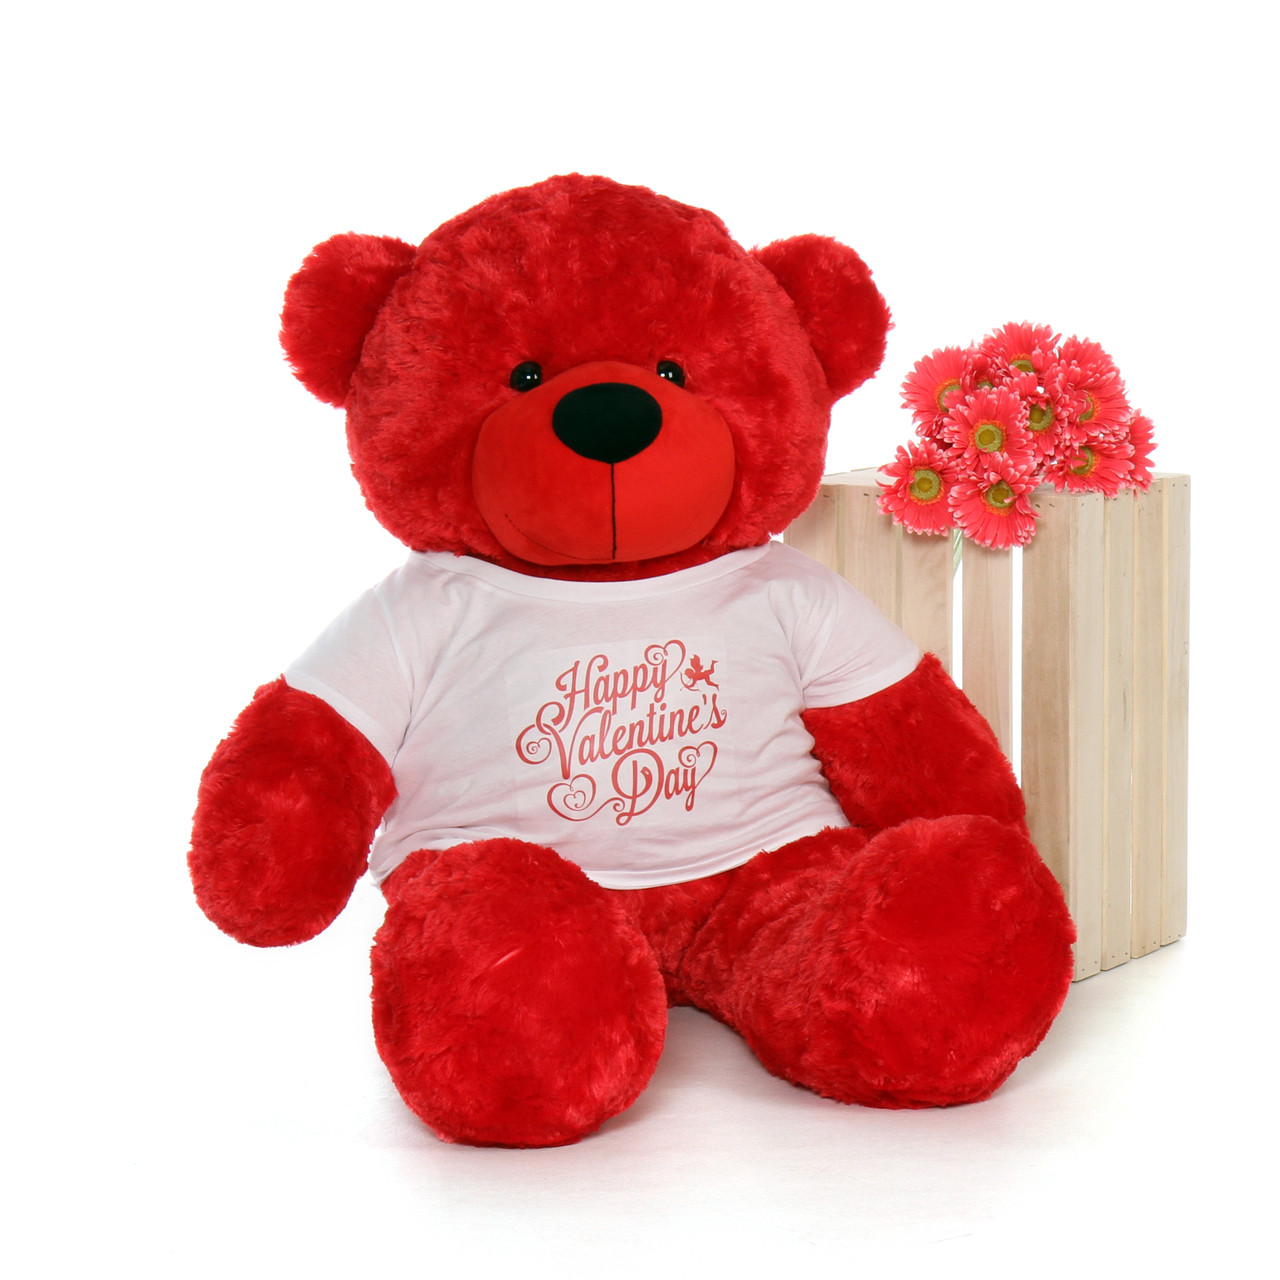 4ft life size teddy bear wearing happy valentines day shirt choose your favorite fur color - Giant Teddy Bear For Valentines Day